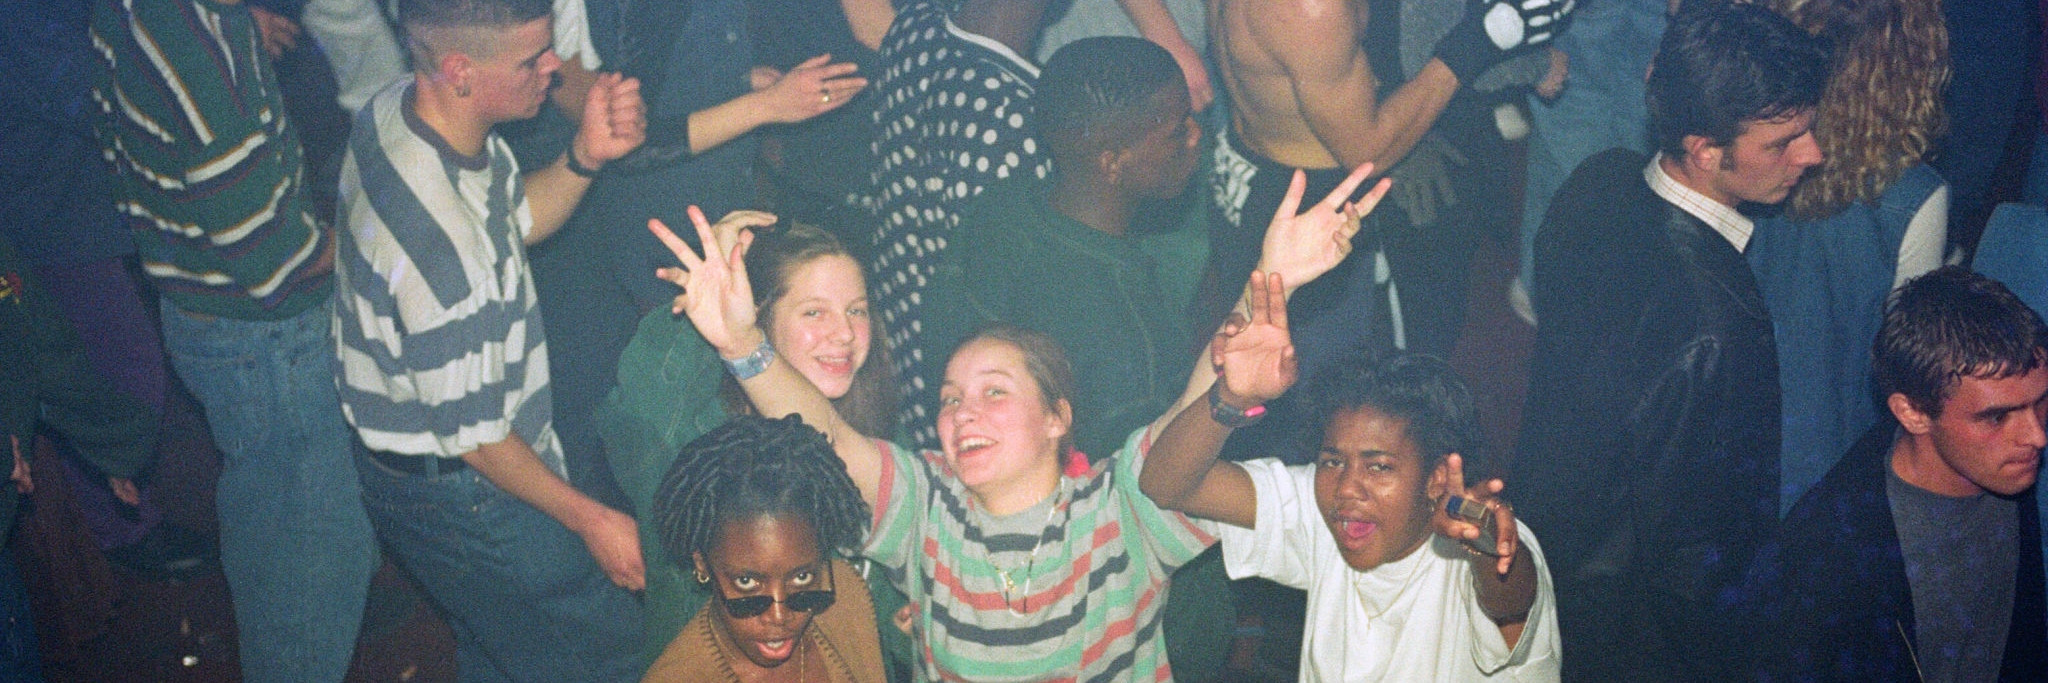 I Love Acid's Placid talks the Nineties, Synthetic Drugs, and Sunrise Raves in Bedfordshire